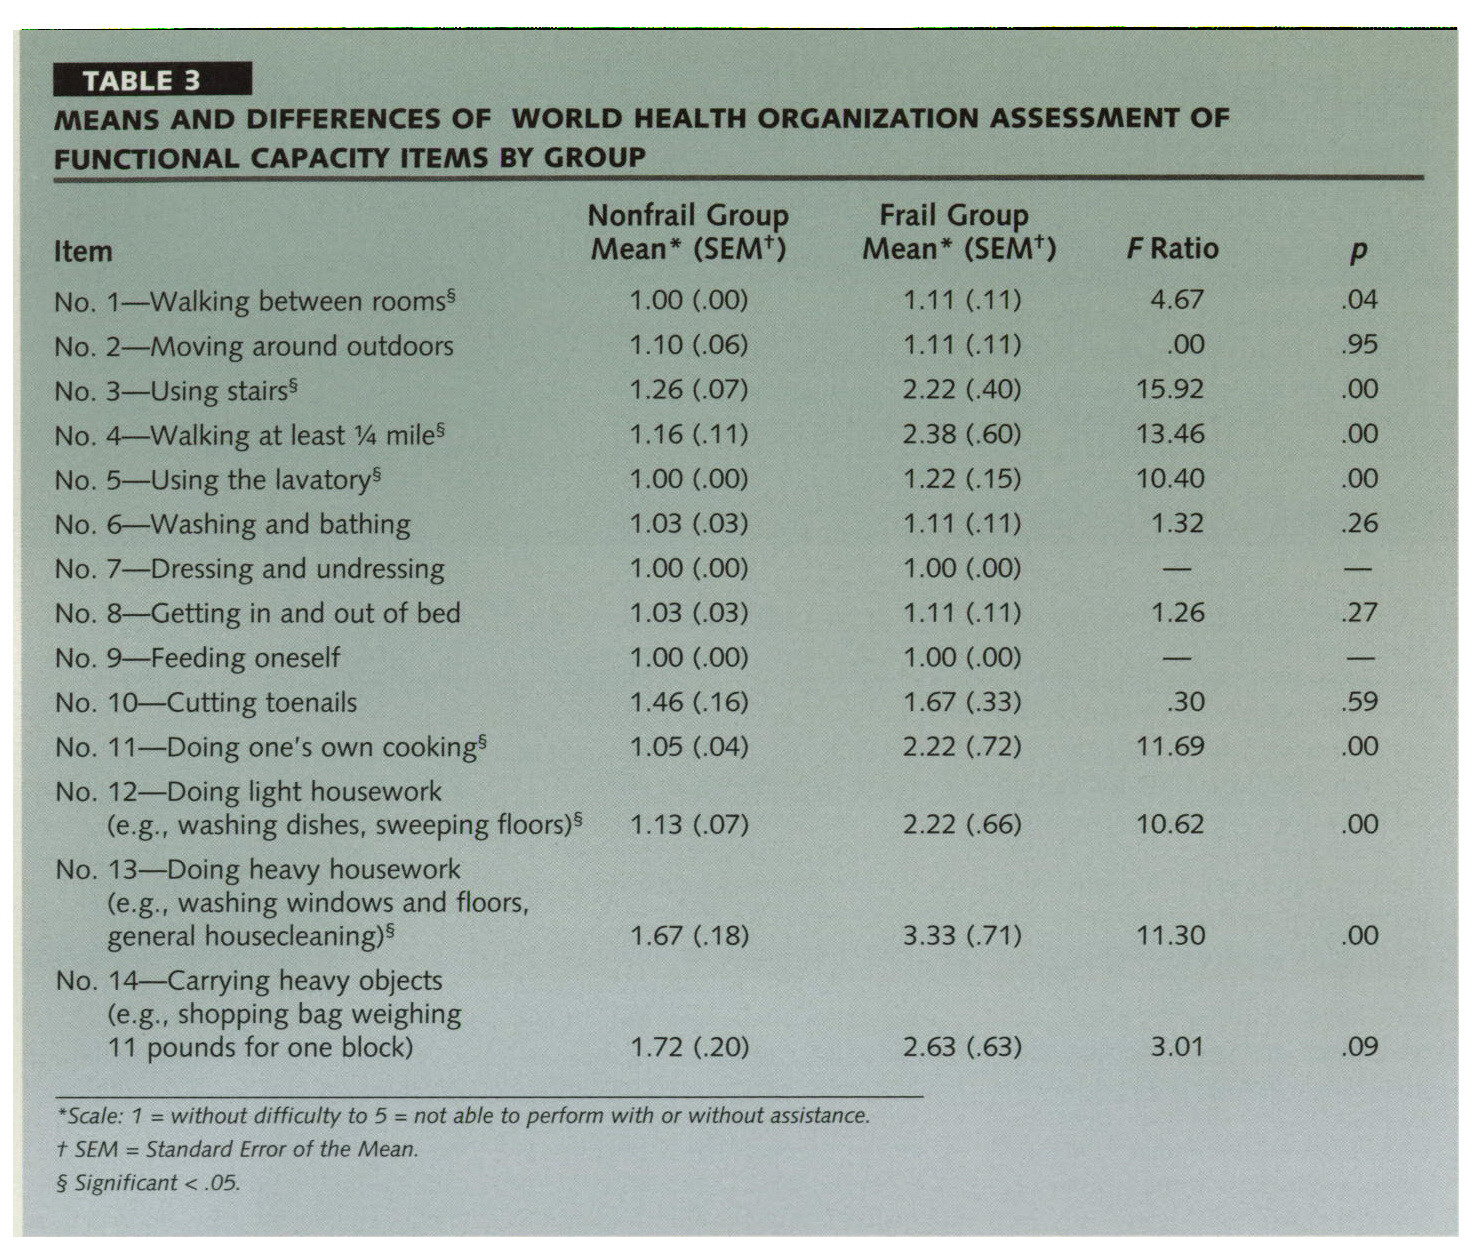 TABLE 3MEANS AND DIFFERENCES OF WORLD HEALTH ORGANIZATION ASSESSMENT OF FUNCTIONAL CAPACITY ITEMS BY GROUP